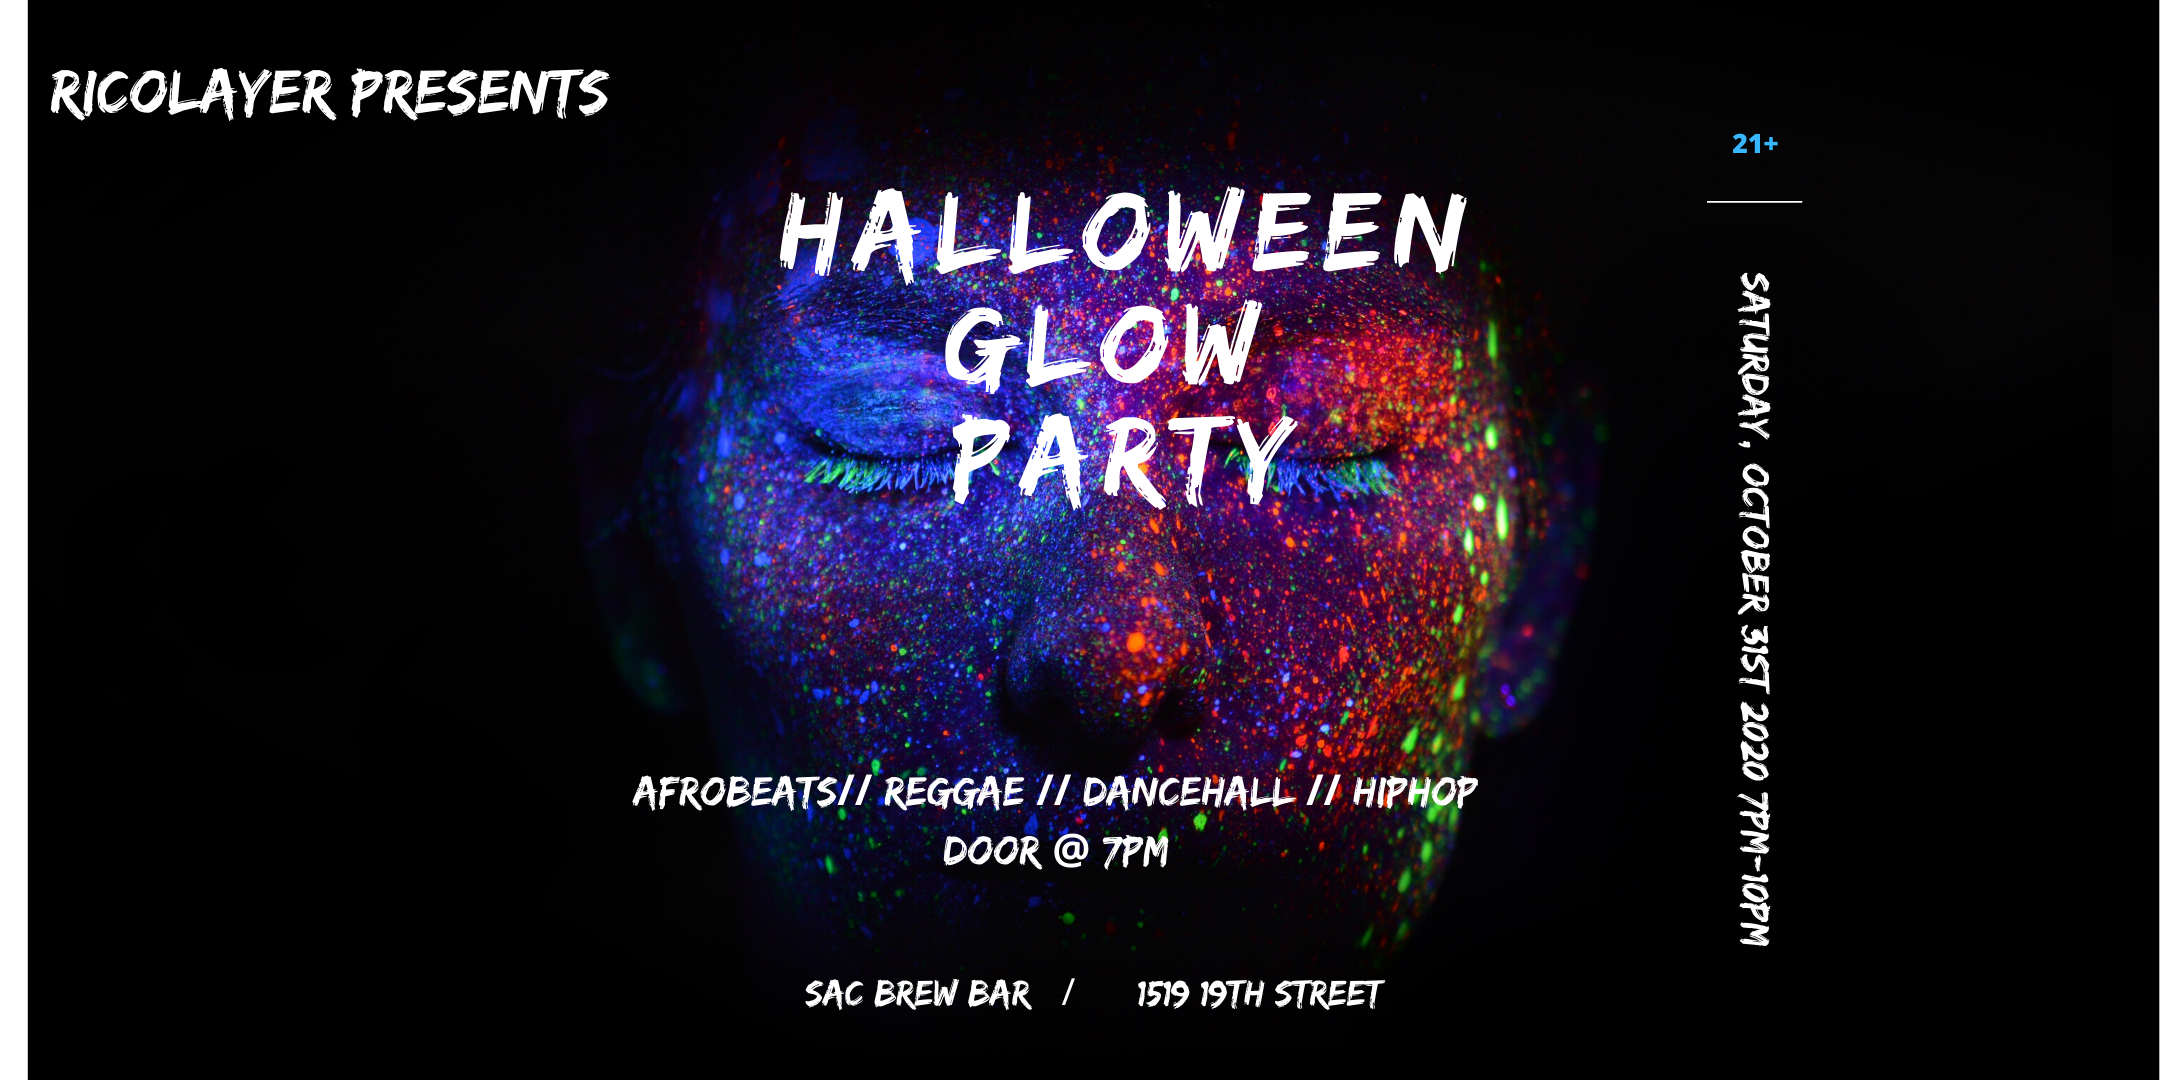 Halloween Party October 19th 2020 Halloween Glow Party   1 NOV 2020